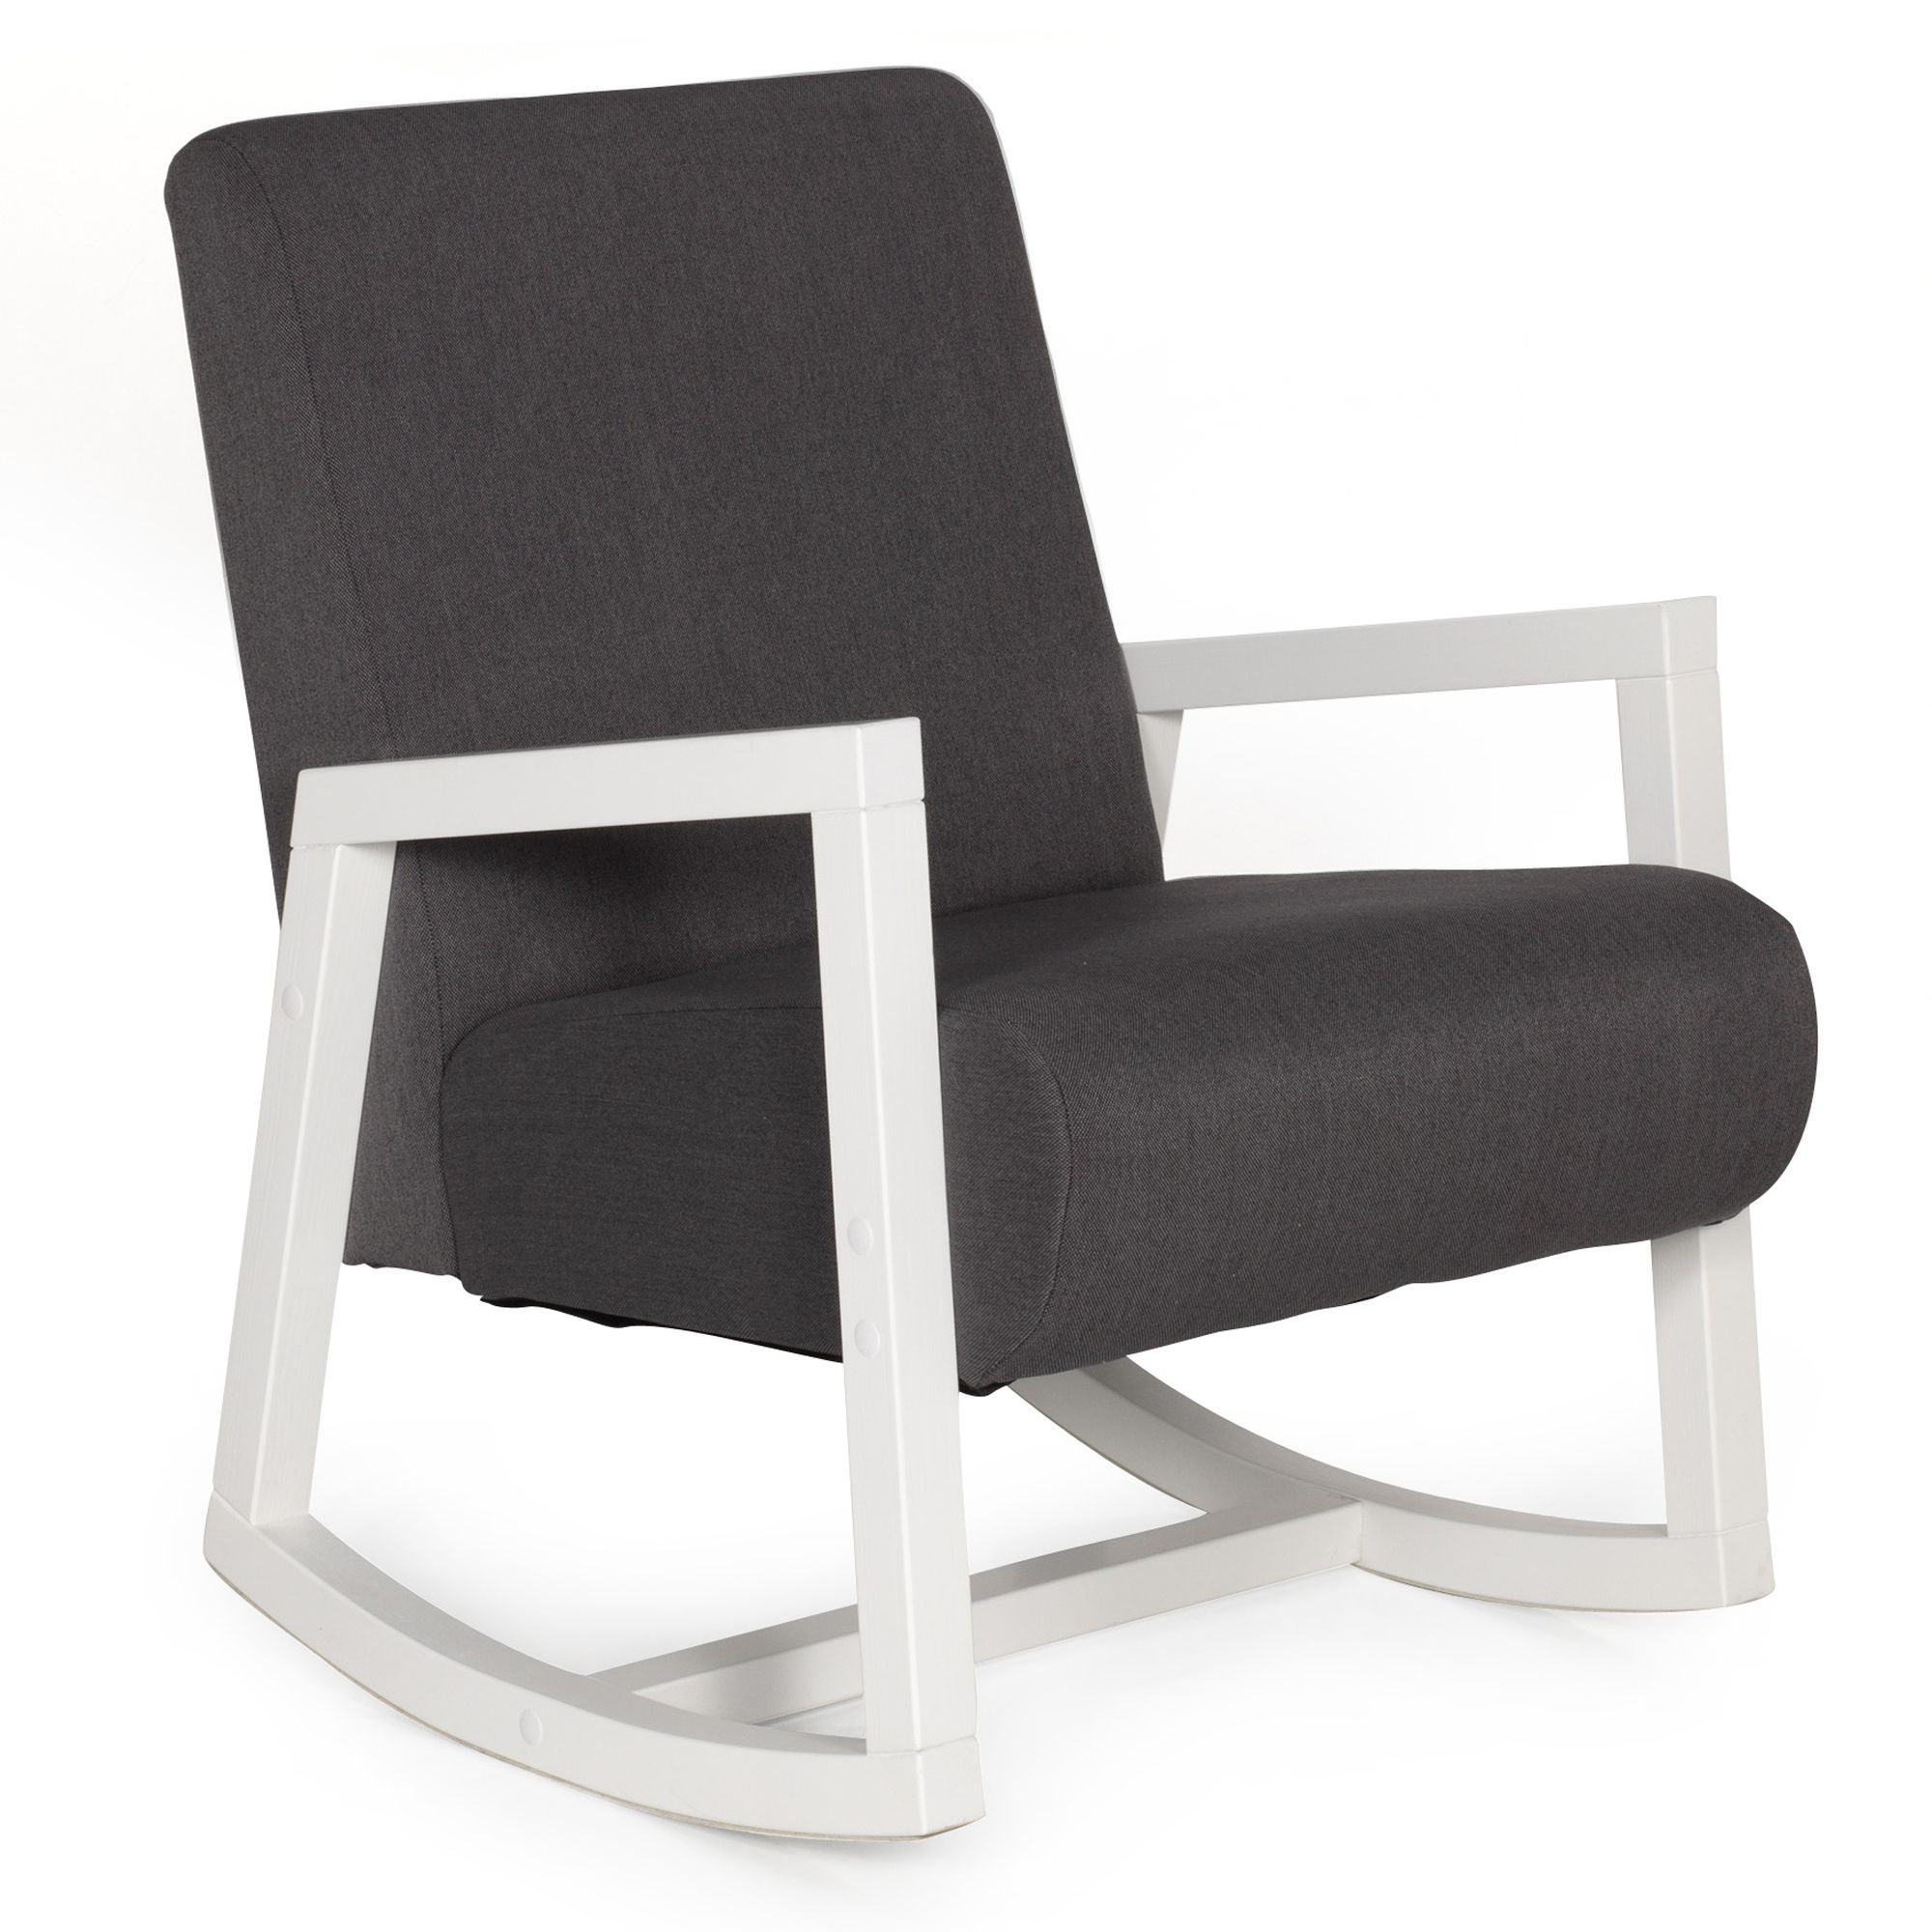 150 fauteuil rocking chair rocky fauteuils et poufs alinea fauteuils pinterest. Black Bedroom Furniture Sets. Home Design Ideas